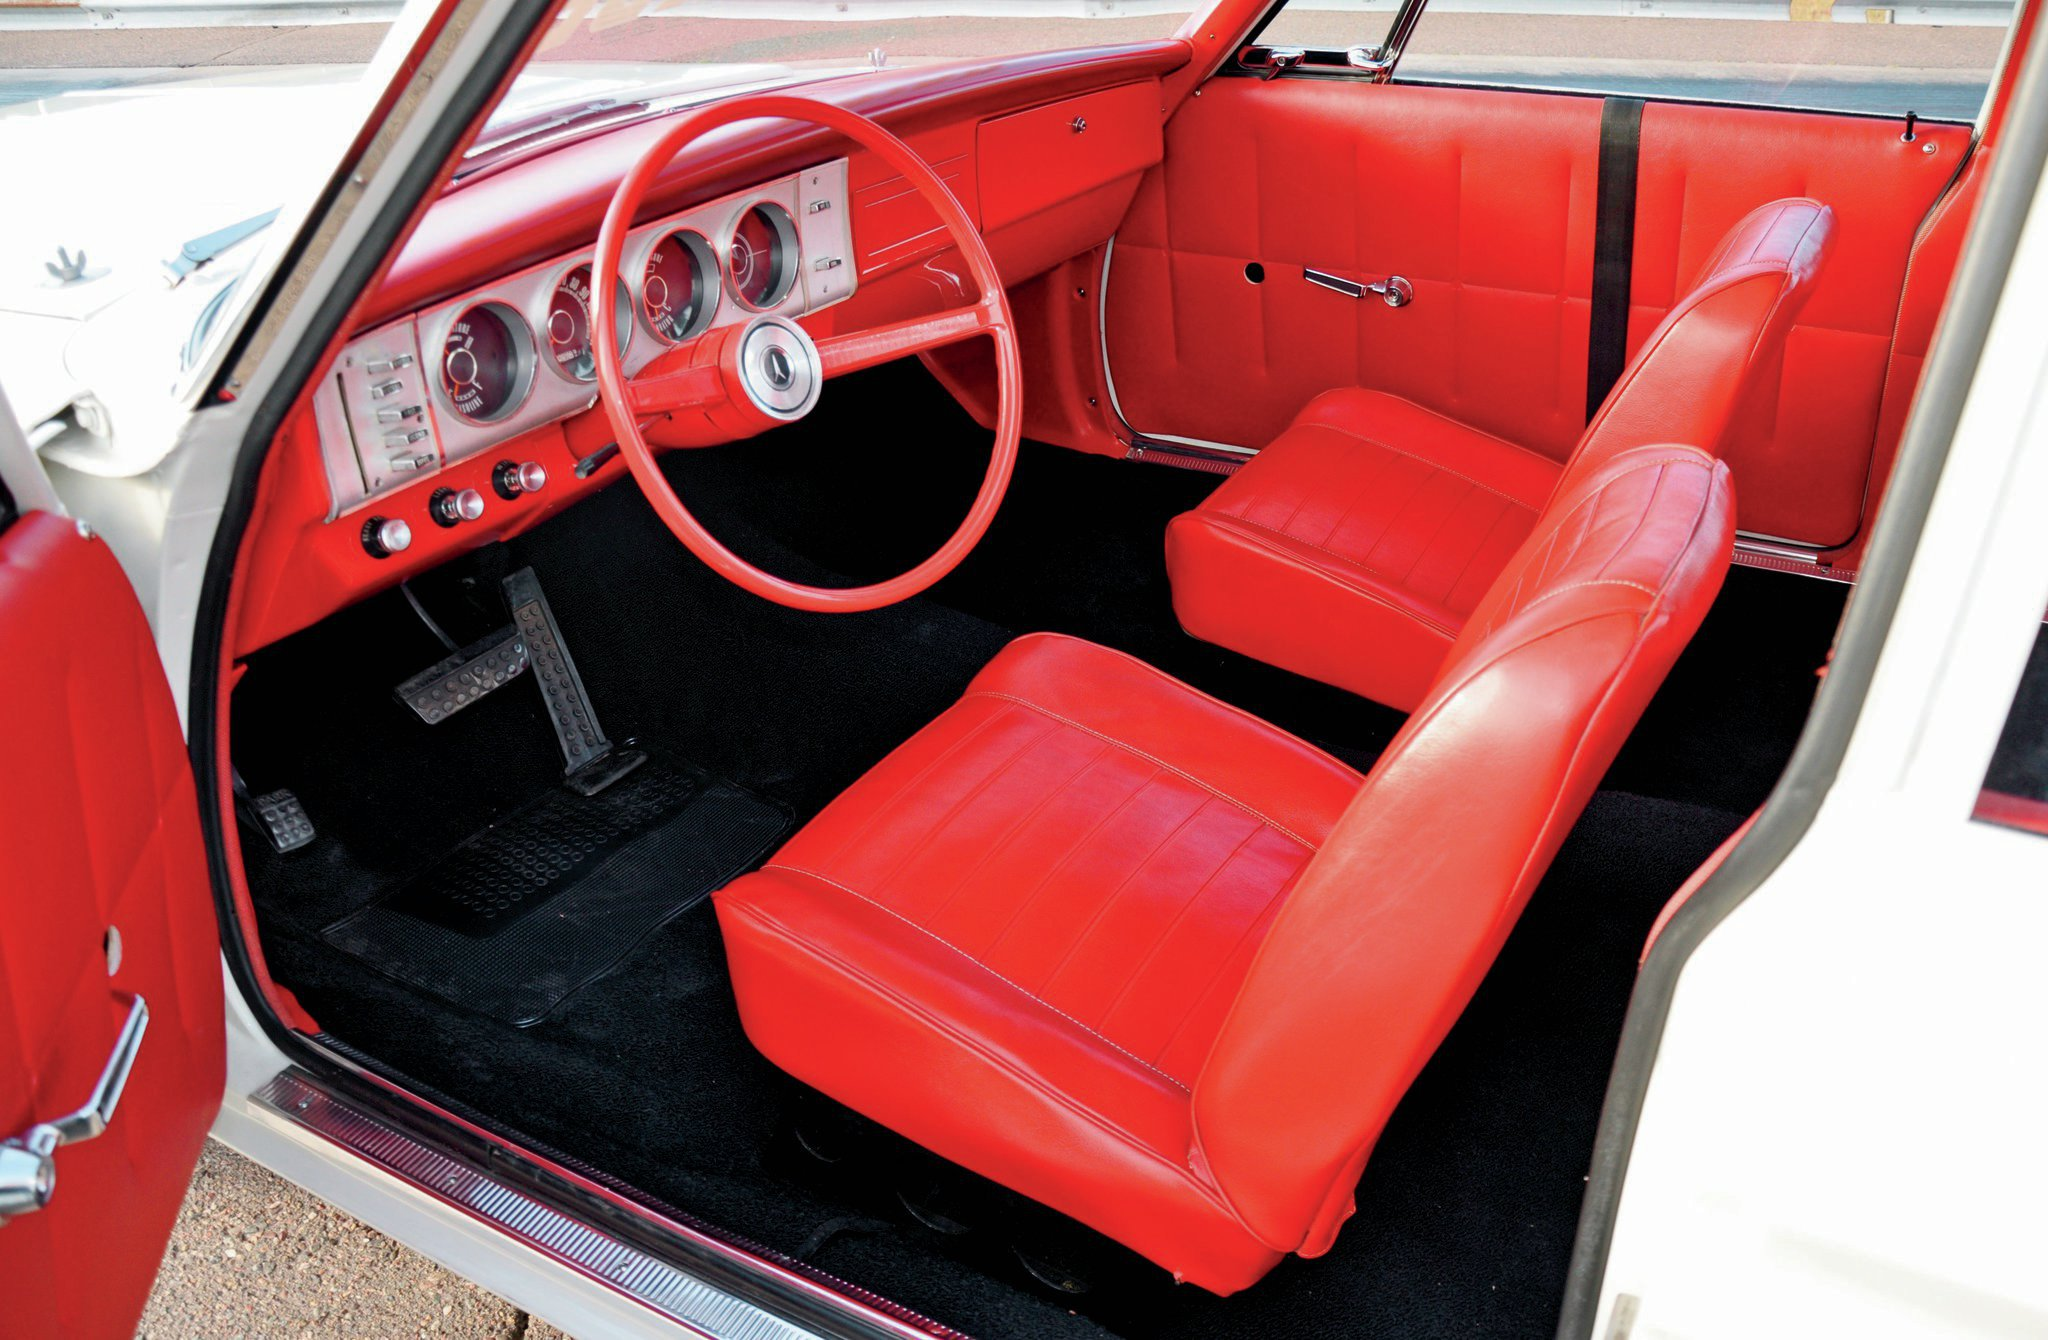 The interior features A100-style seats, no backseat, straps for the light Corning glass, and no sound deadener.